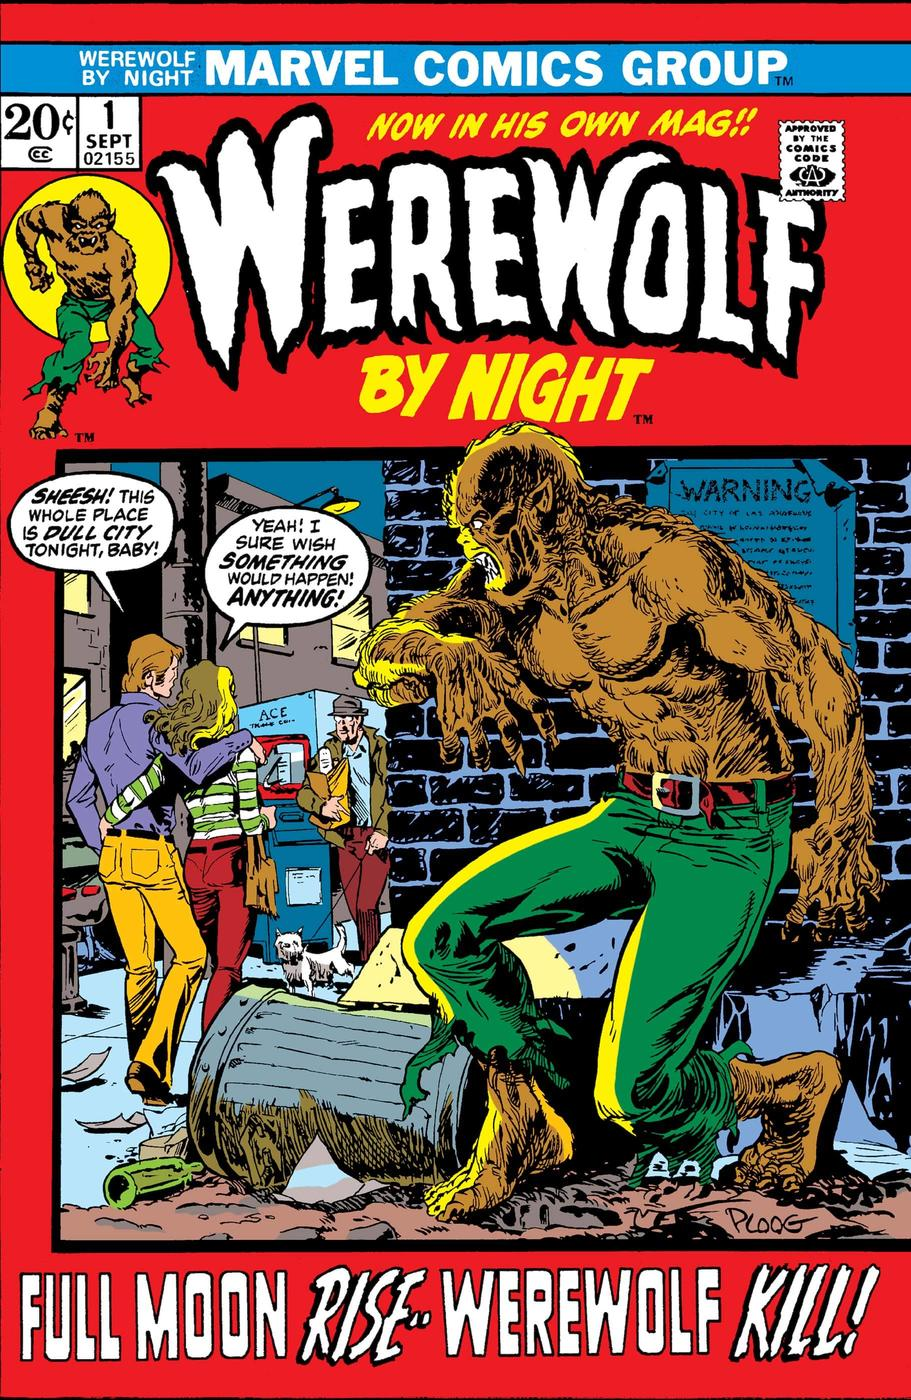 Werewolf by Night!